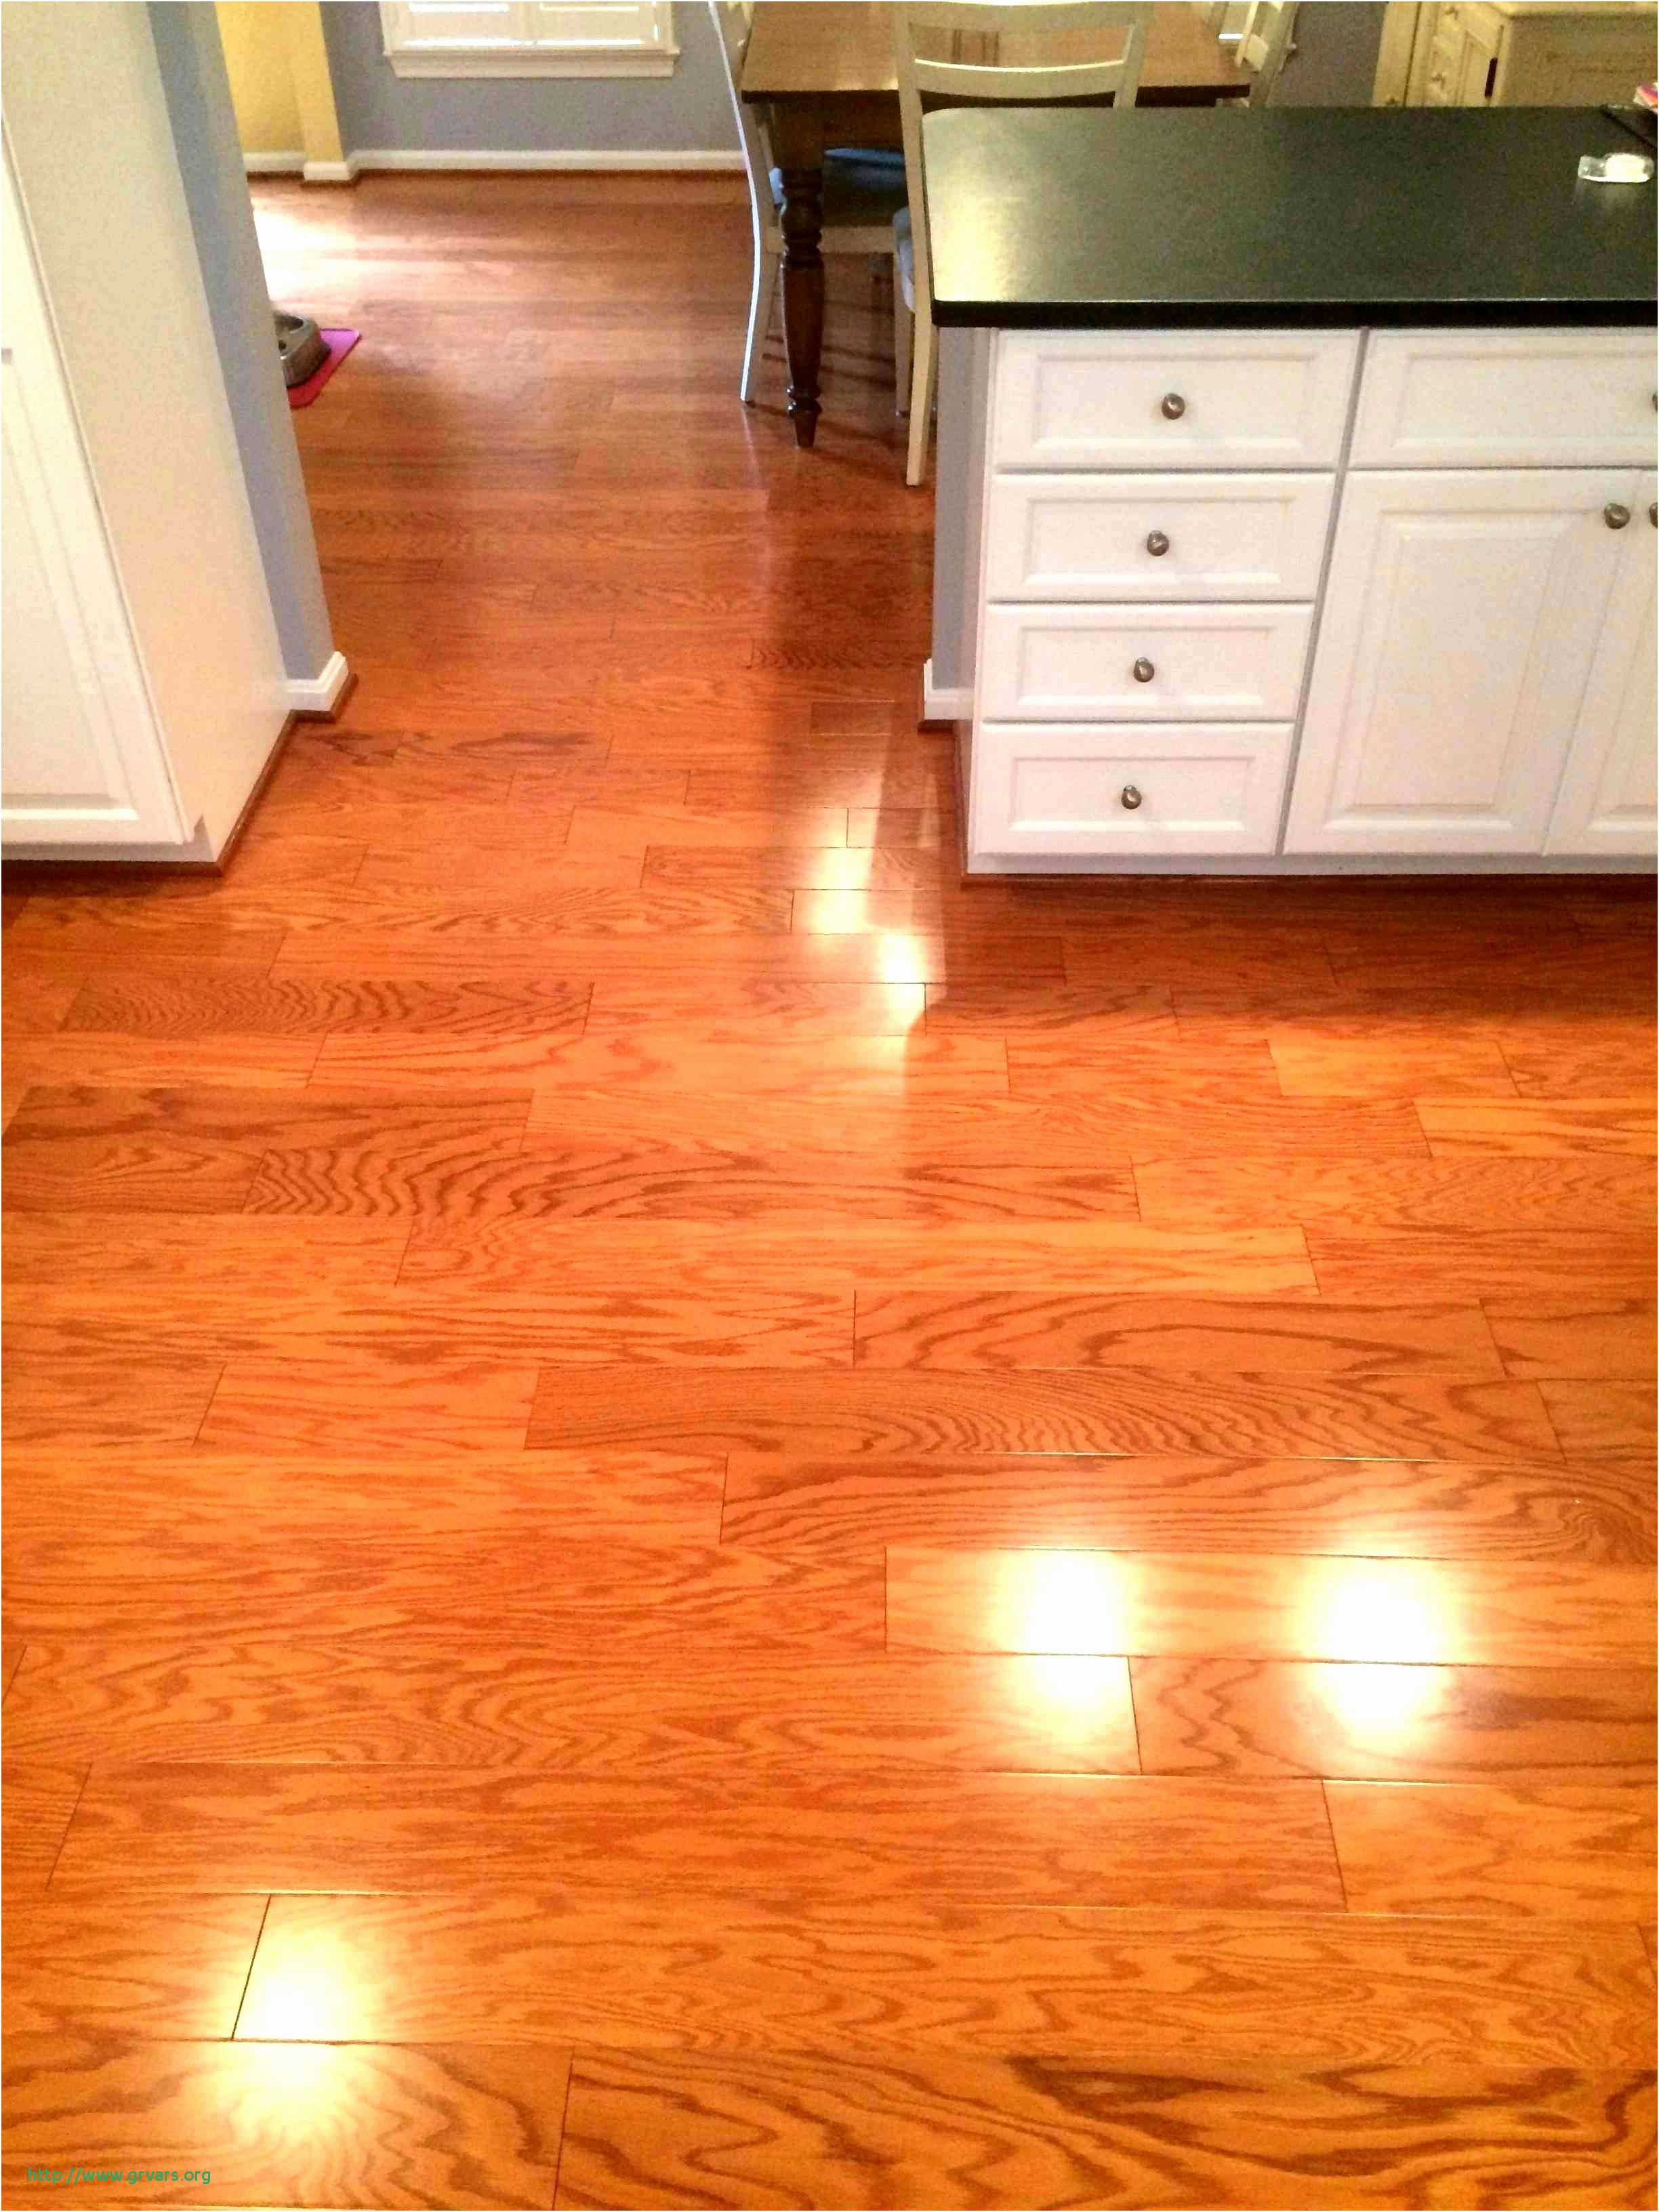 discount hardwood flooring charlotte nc of 24 beau elite flooring and design ideas blog throughout bruce flooring best where to hardwood flooring inspirational 0d grace place barnegat